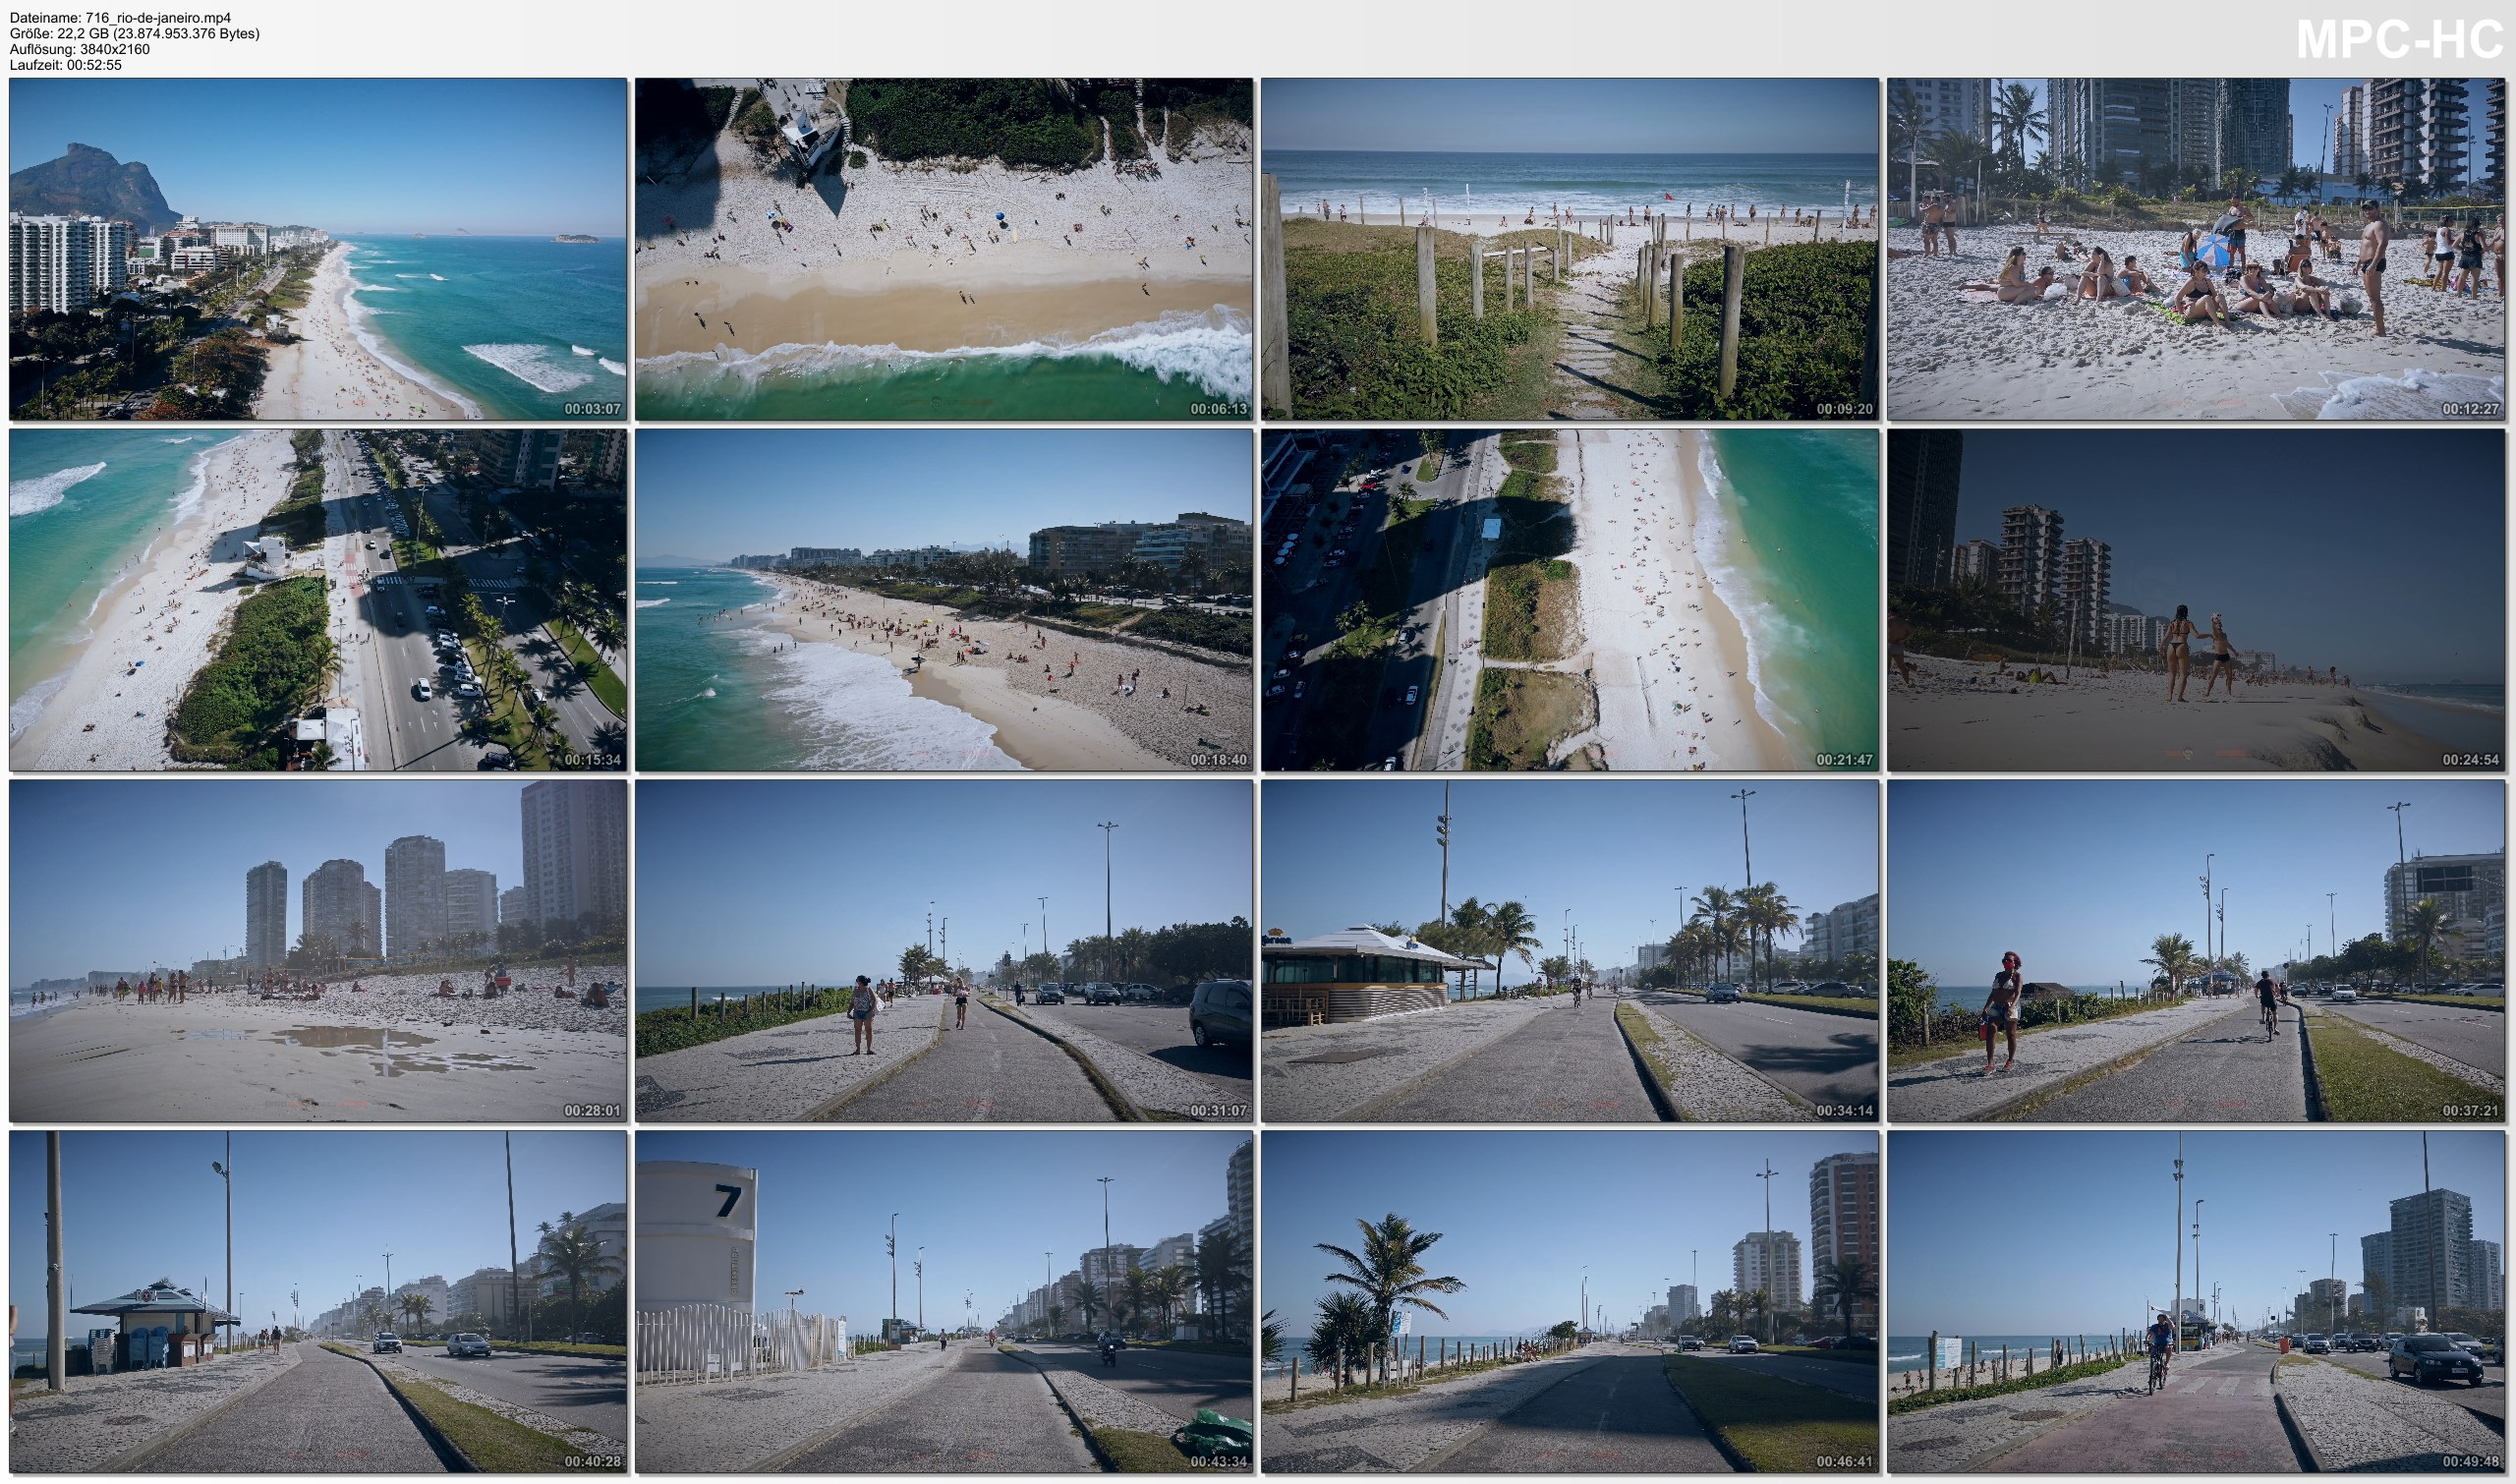 Drone Pictures from Video 【4K】1 HOUR DRONE FILM: «Barra da Tijuca after Corona» Ultra HD + Chillout Music (2160p Ambient TV)